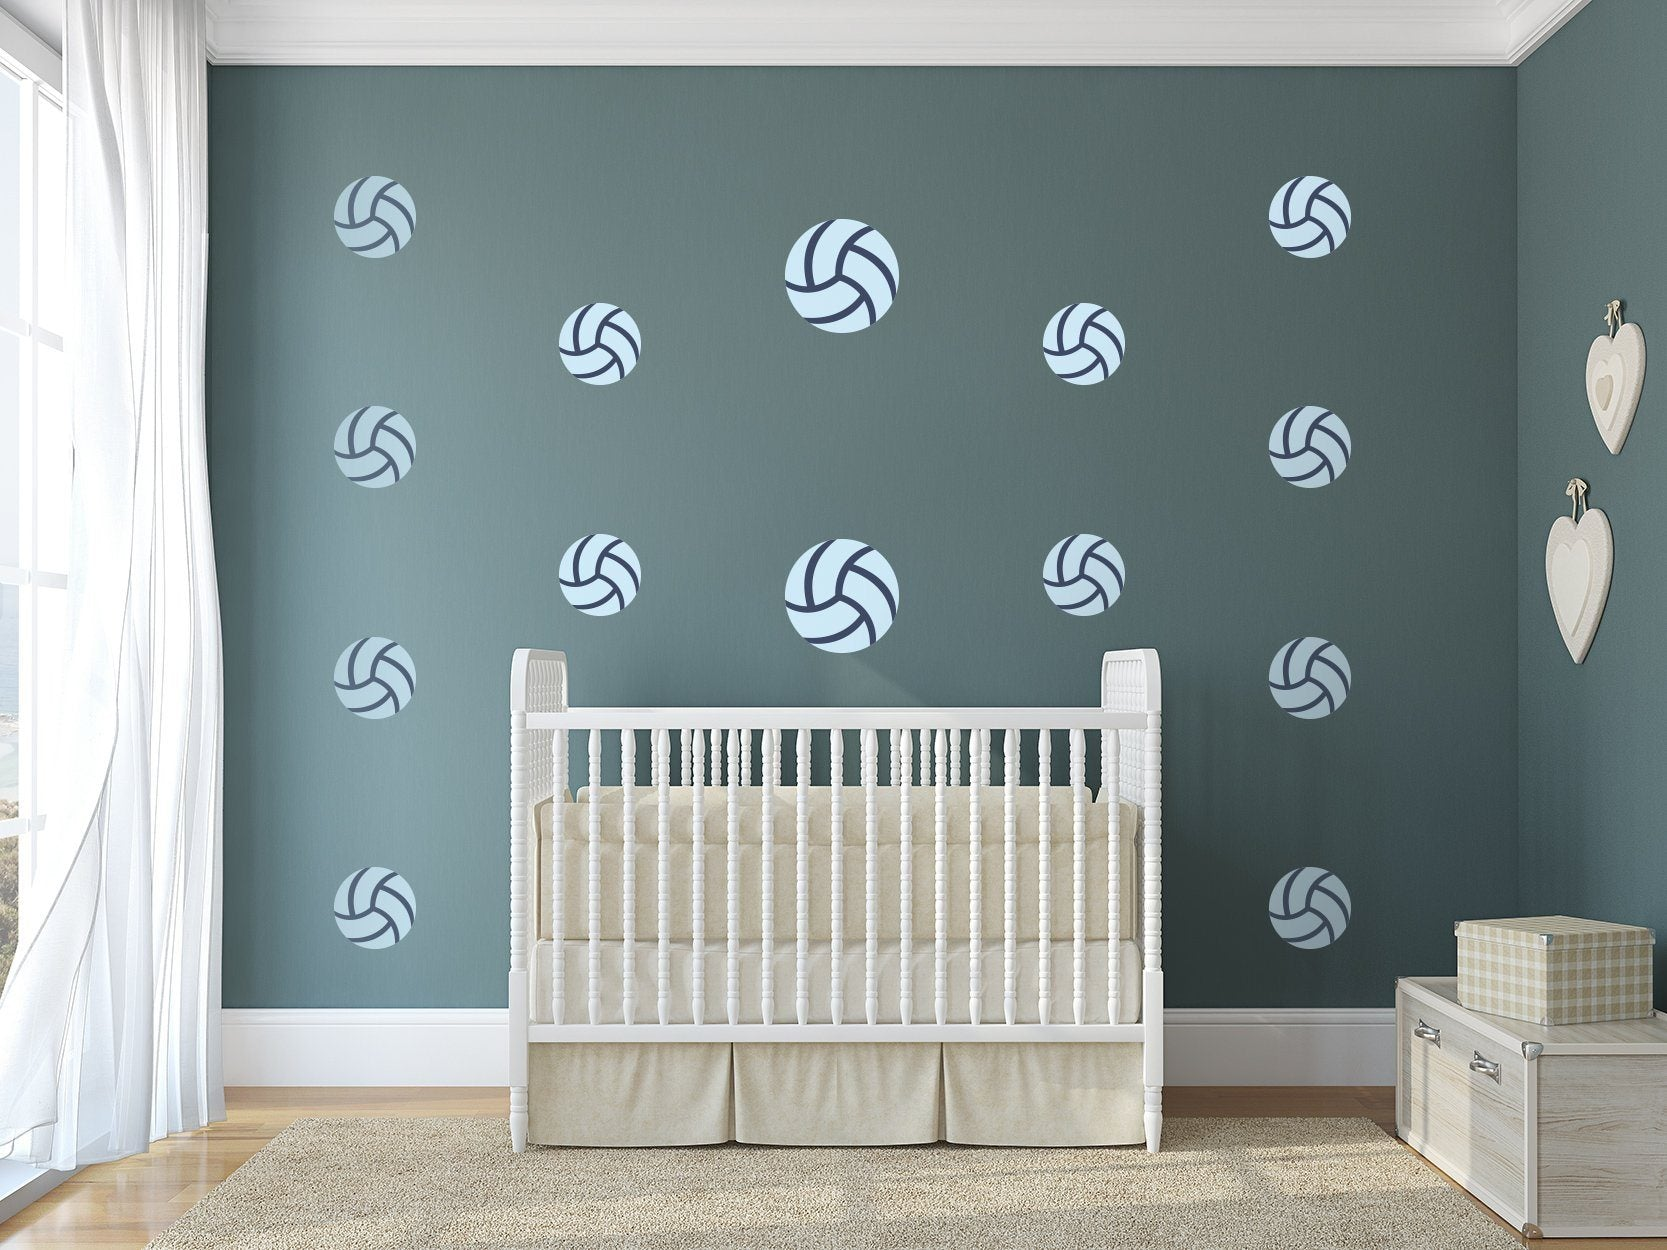 Volleyball Nursery Wall Art -  Sports Theme Vinyl Wall Decals For Nurseries, Children's Rooms, And Home Decor